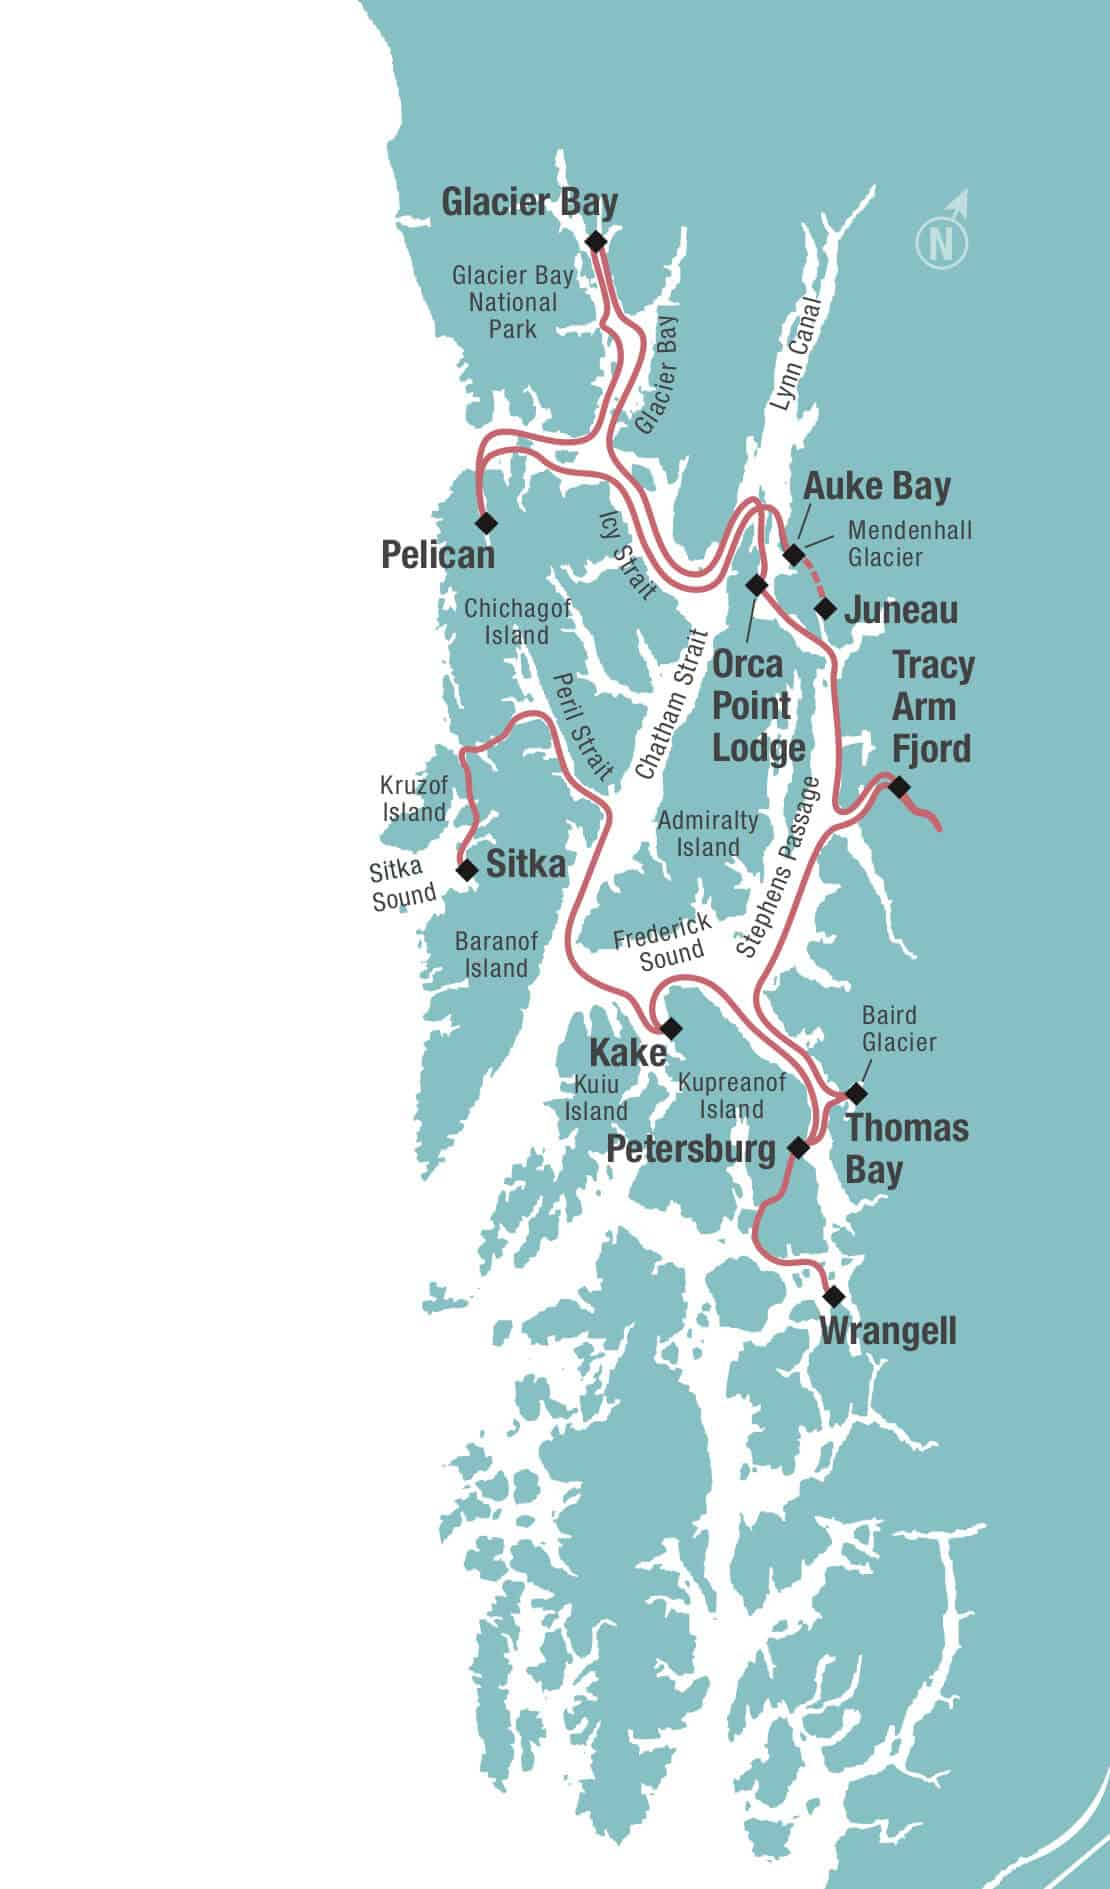 Route map of Glacier Bay & Island Adventure small ship cruise, operating from Sitka to Juneau or reverse, with visits to Wilderness Bay, Kake, Wrangell, Petersburg, Thomas Bay, Baird Glacier, Tracy Arm Fjord, Orca Point Lodge, Glacier Bay National Park, Lisianski Inlet & Pelican.